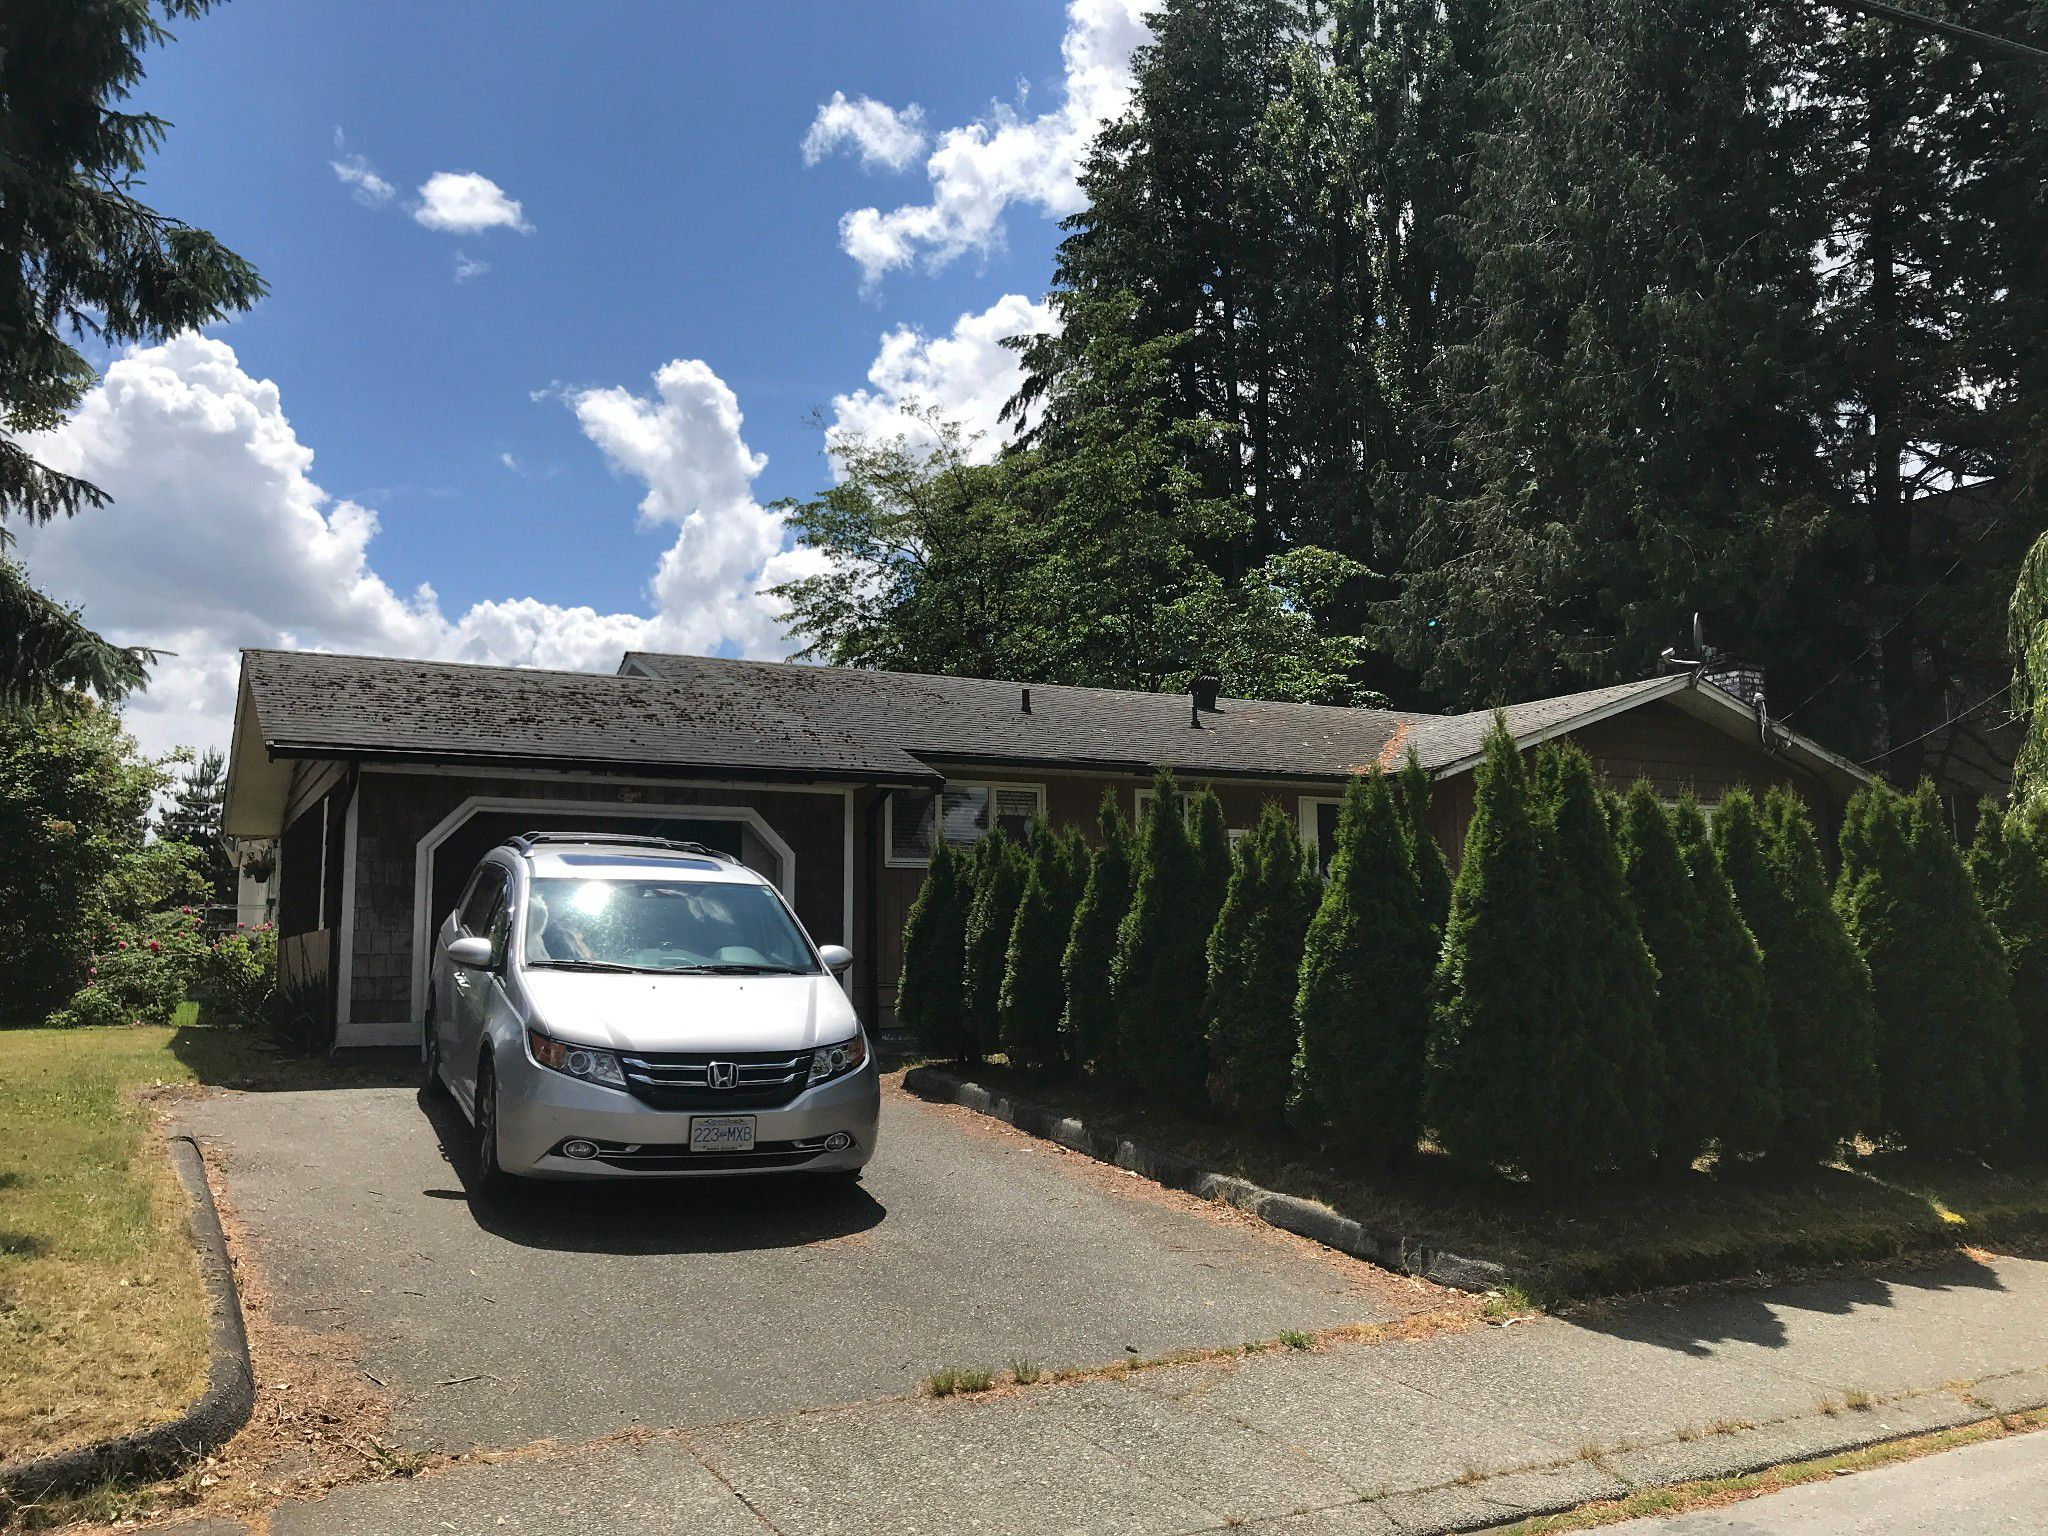 Main Photo: 32066 Tims Ave. in Abbotsford: Abbotsford West House for rent